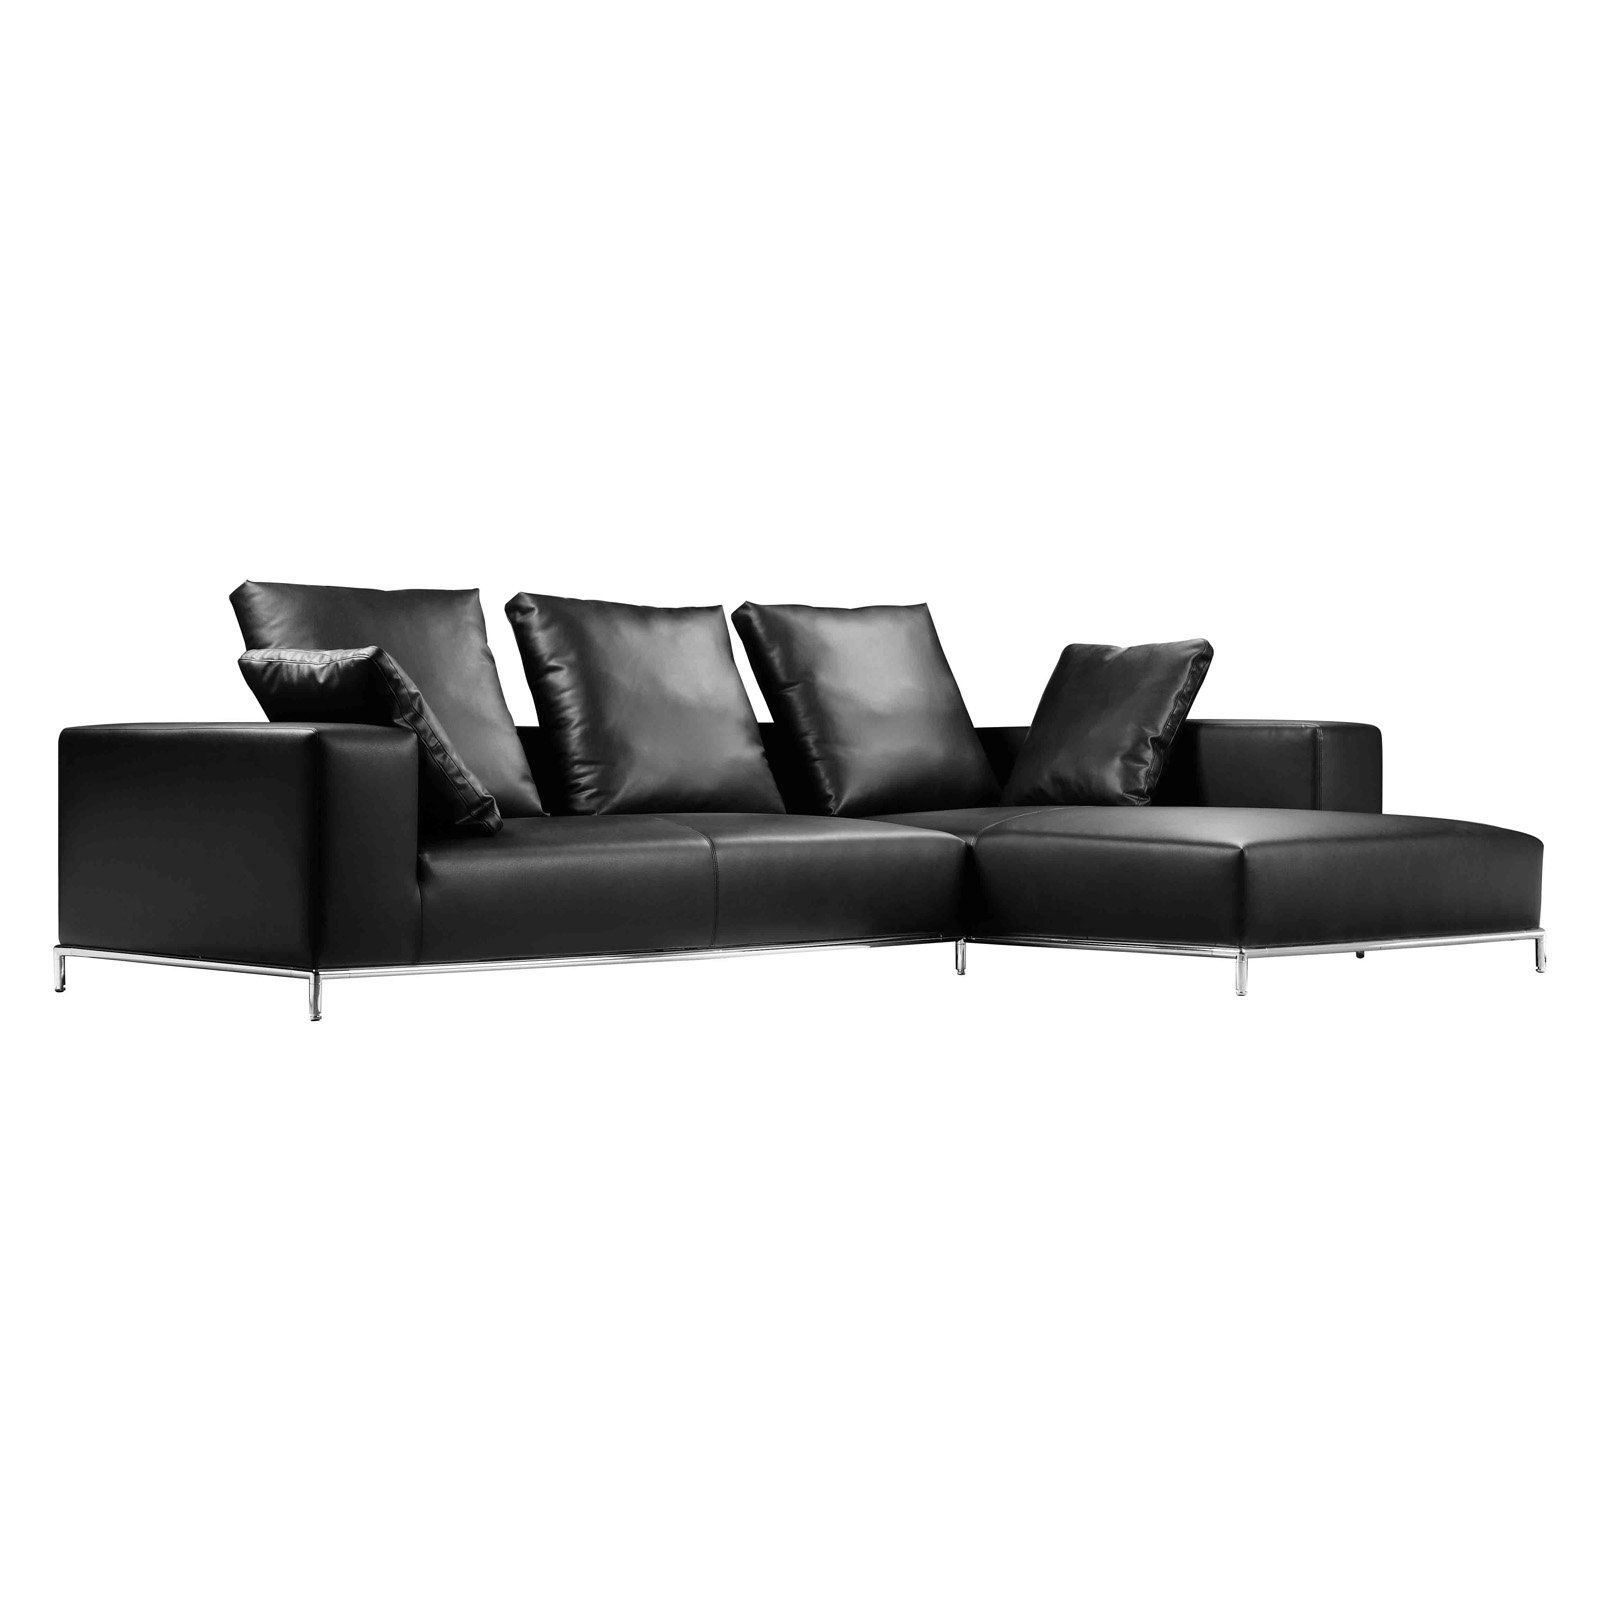 Pangea Home Kent Right Arm Facing Sectional - PETRA-RAF BLK